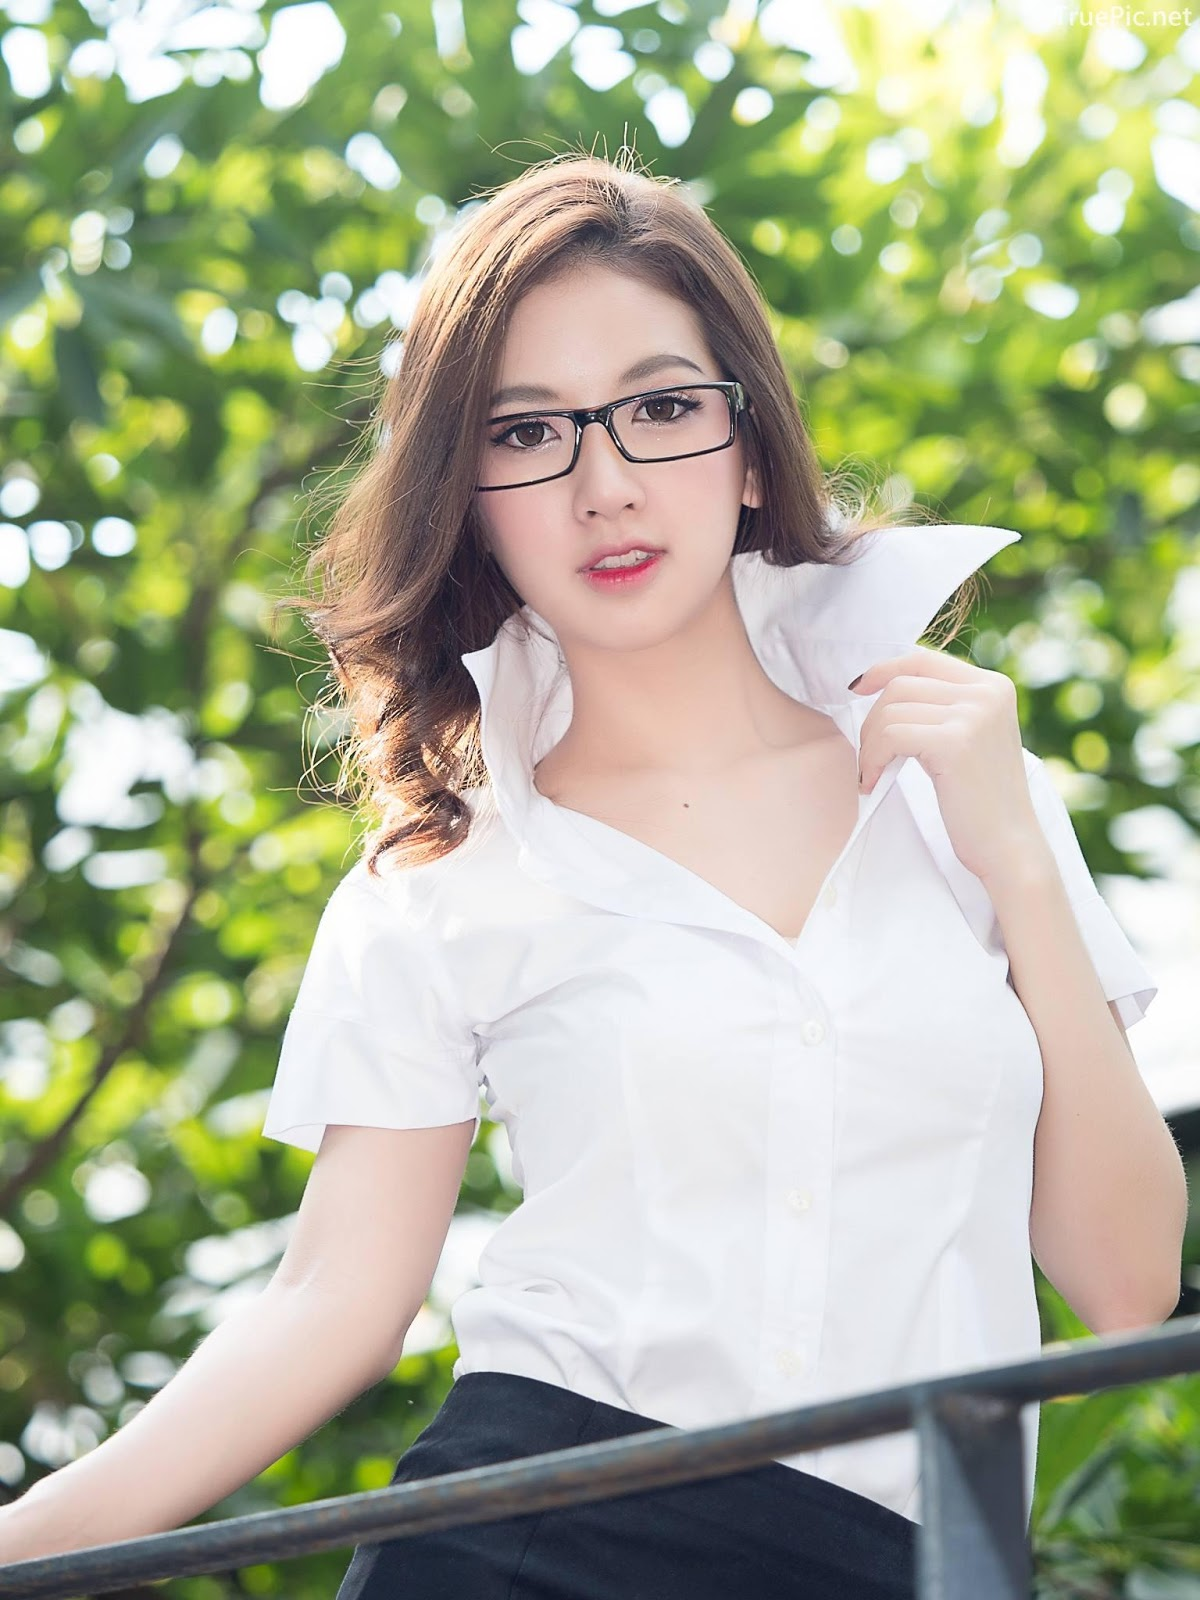 Thailand model - Yingaon Duangporn - Concept The Beautiful Office Girl - Picture 9